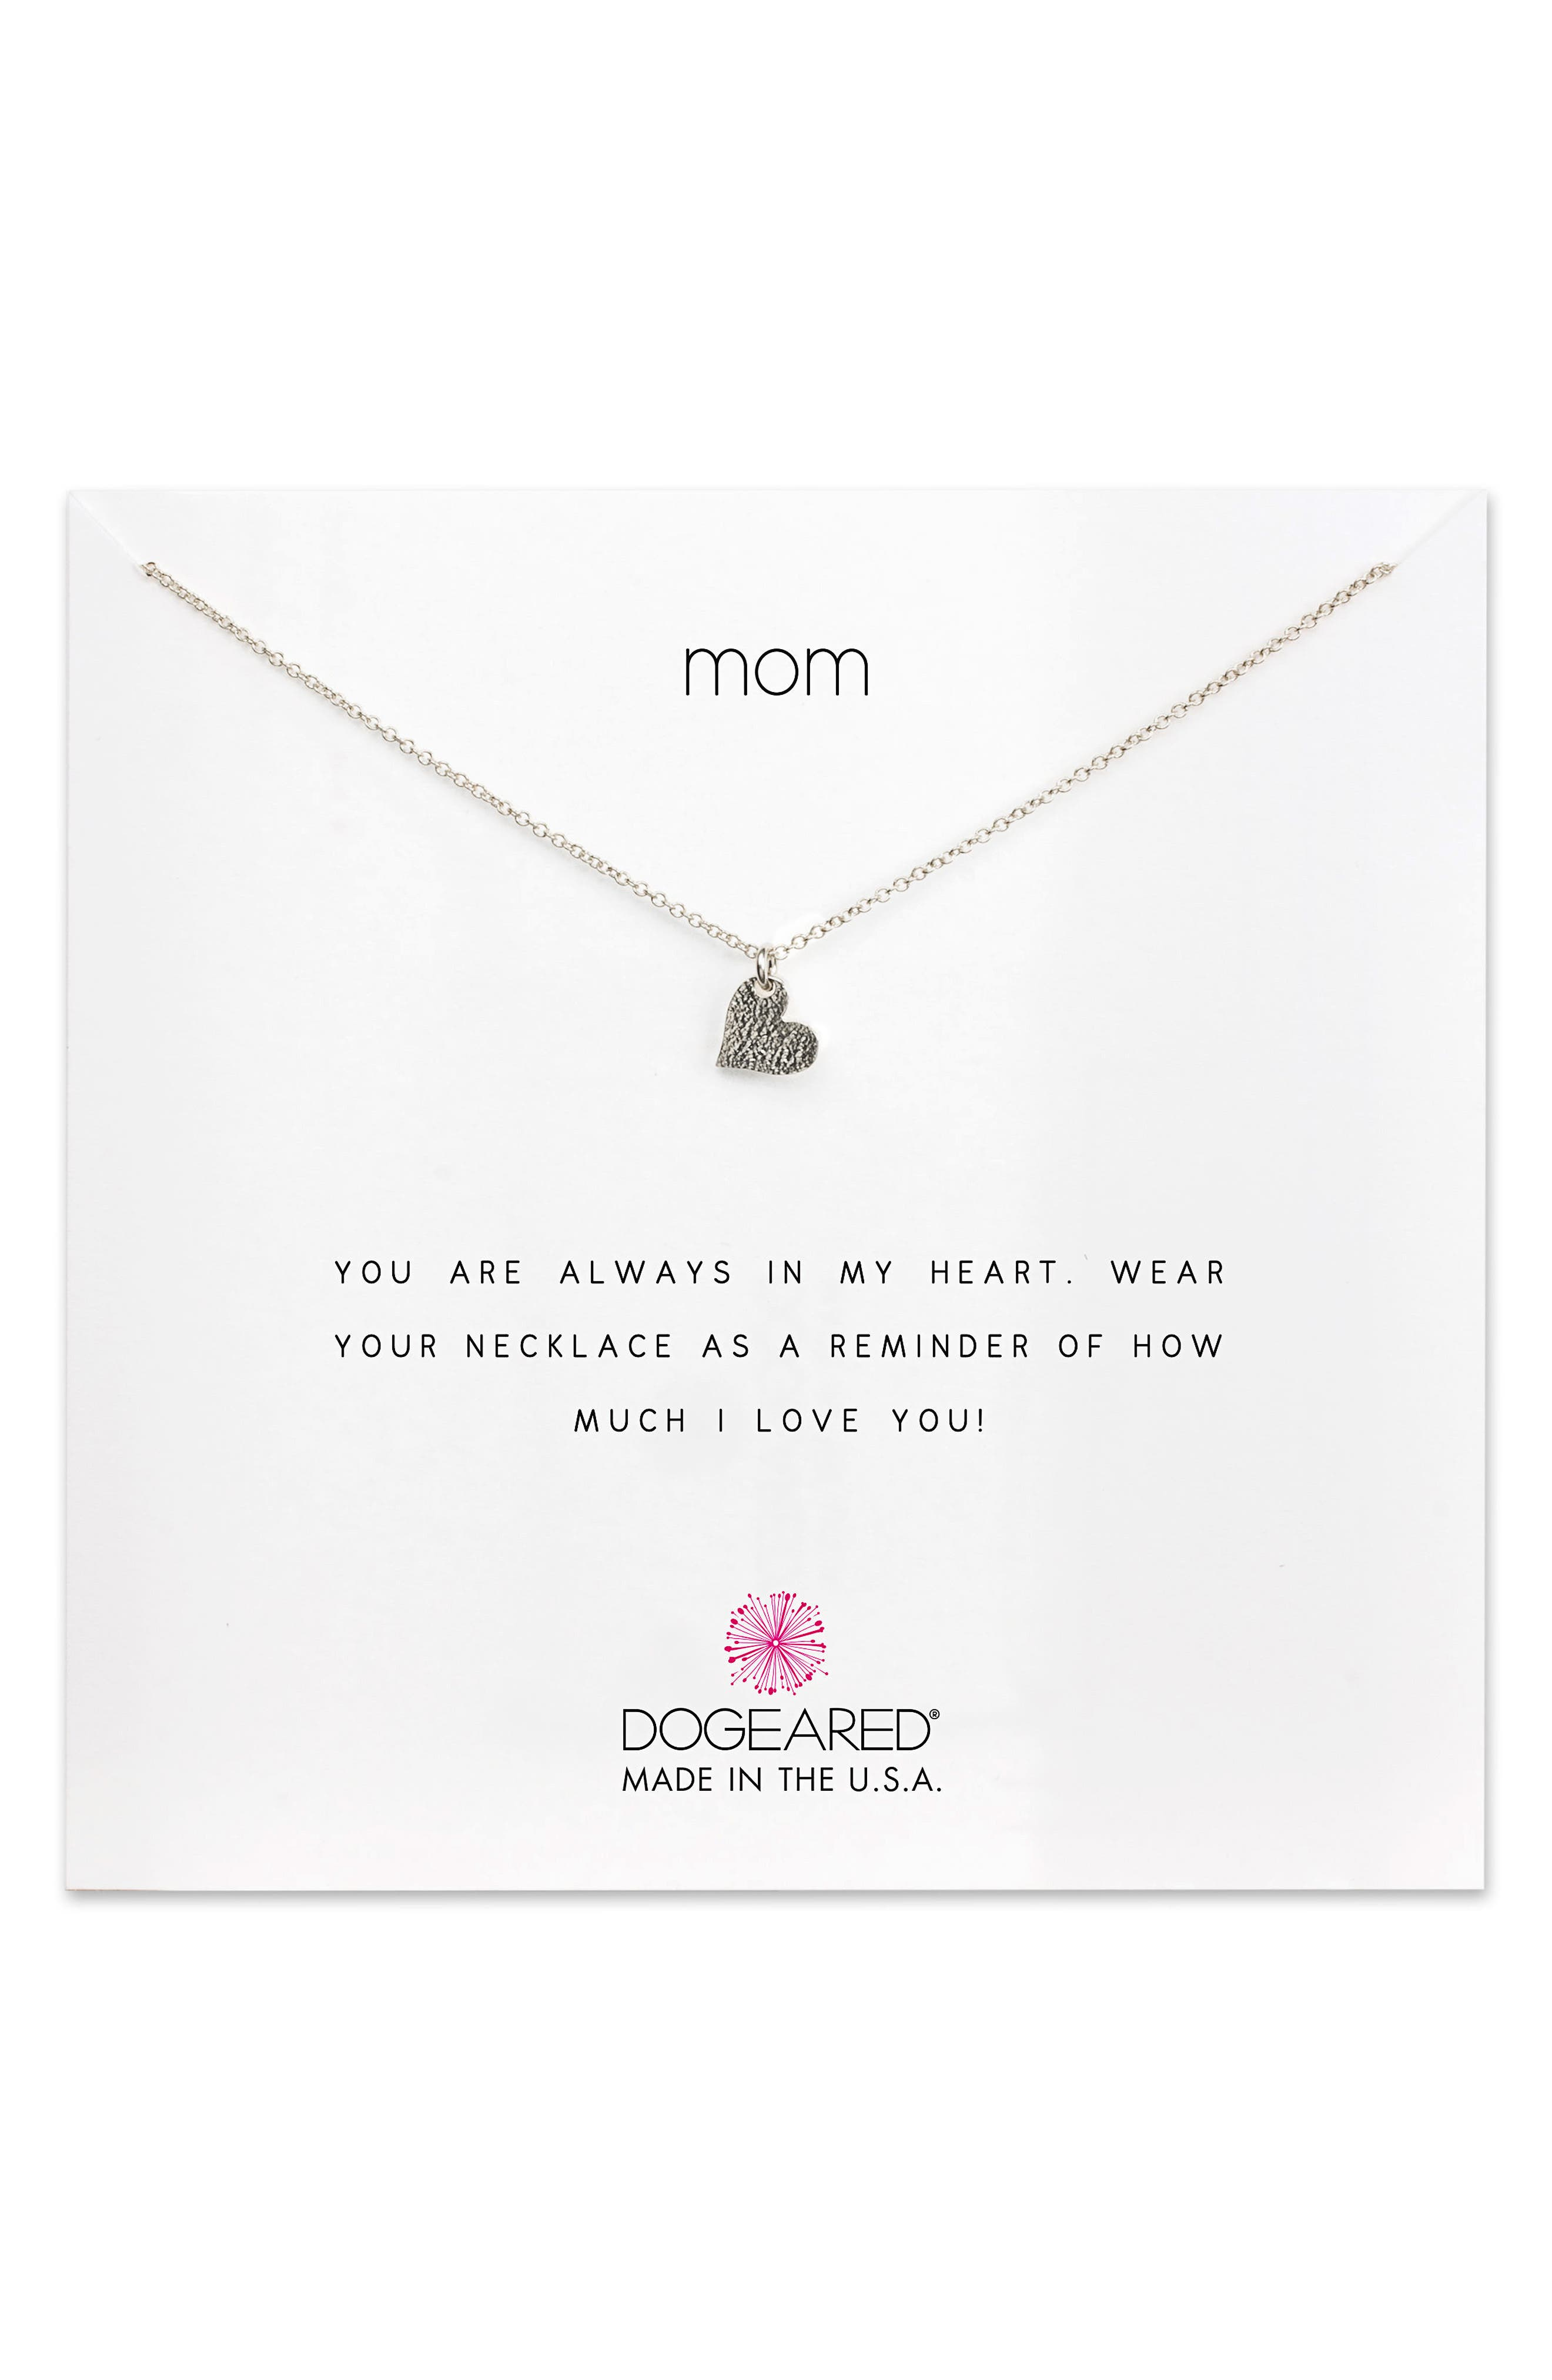 Mom Pendant Necklace,                             Main thumbnail 1, color,                             Silver